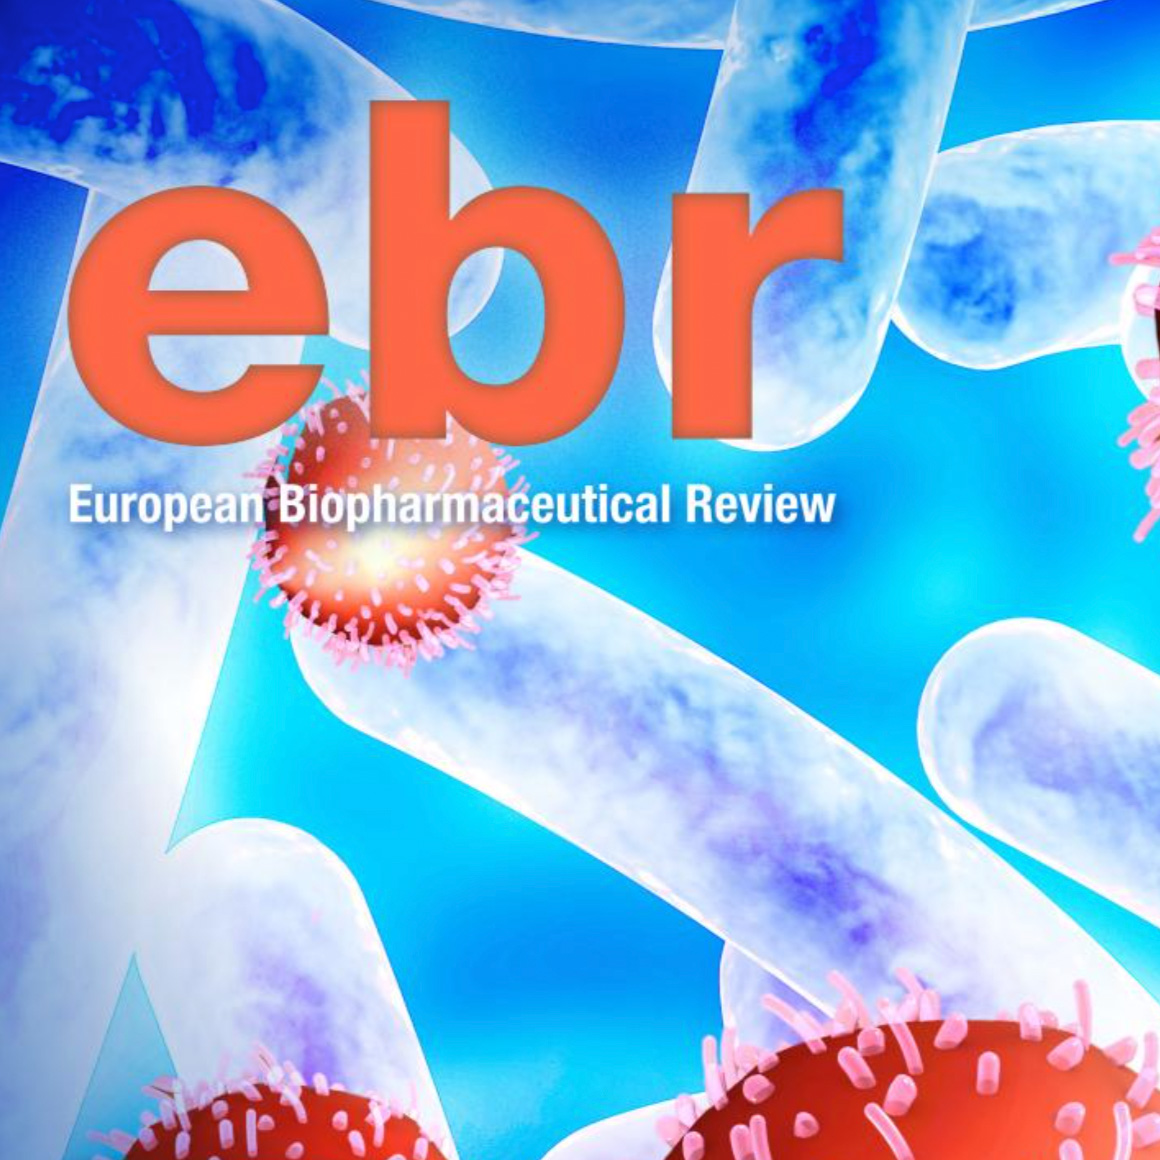 """""""We Are Losing Our Strongest Allies Against Infectious Diseases"""" - Dr. Alexander Sturm for European Biopharmaceutical Review (EBR)"""